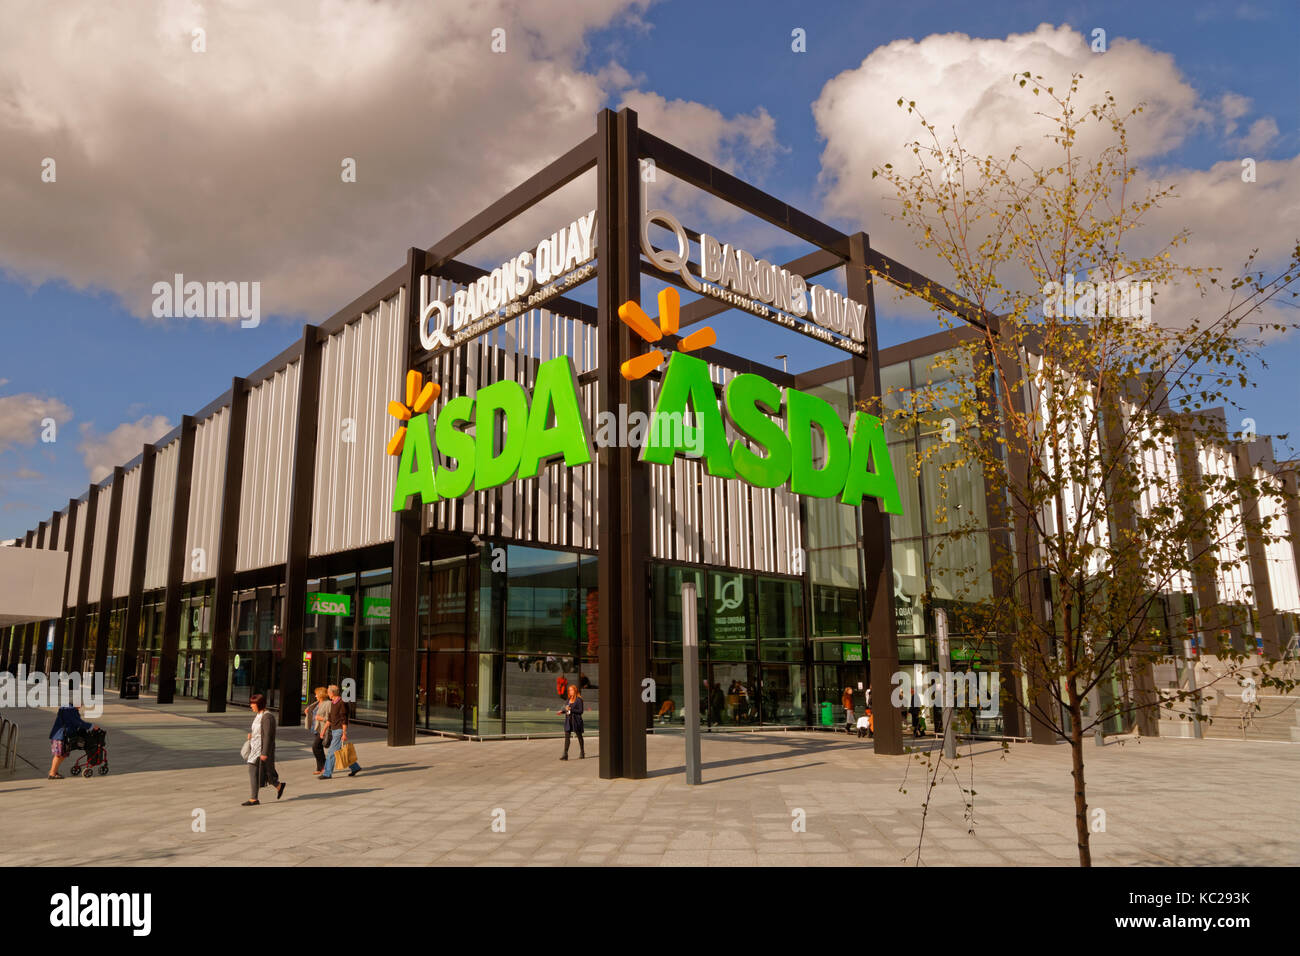 Asda superstore at Barons Quay, Northwich, Cheshire, England, UK. - Stock Image